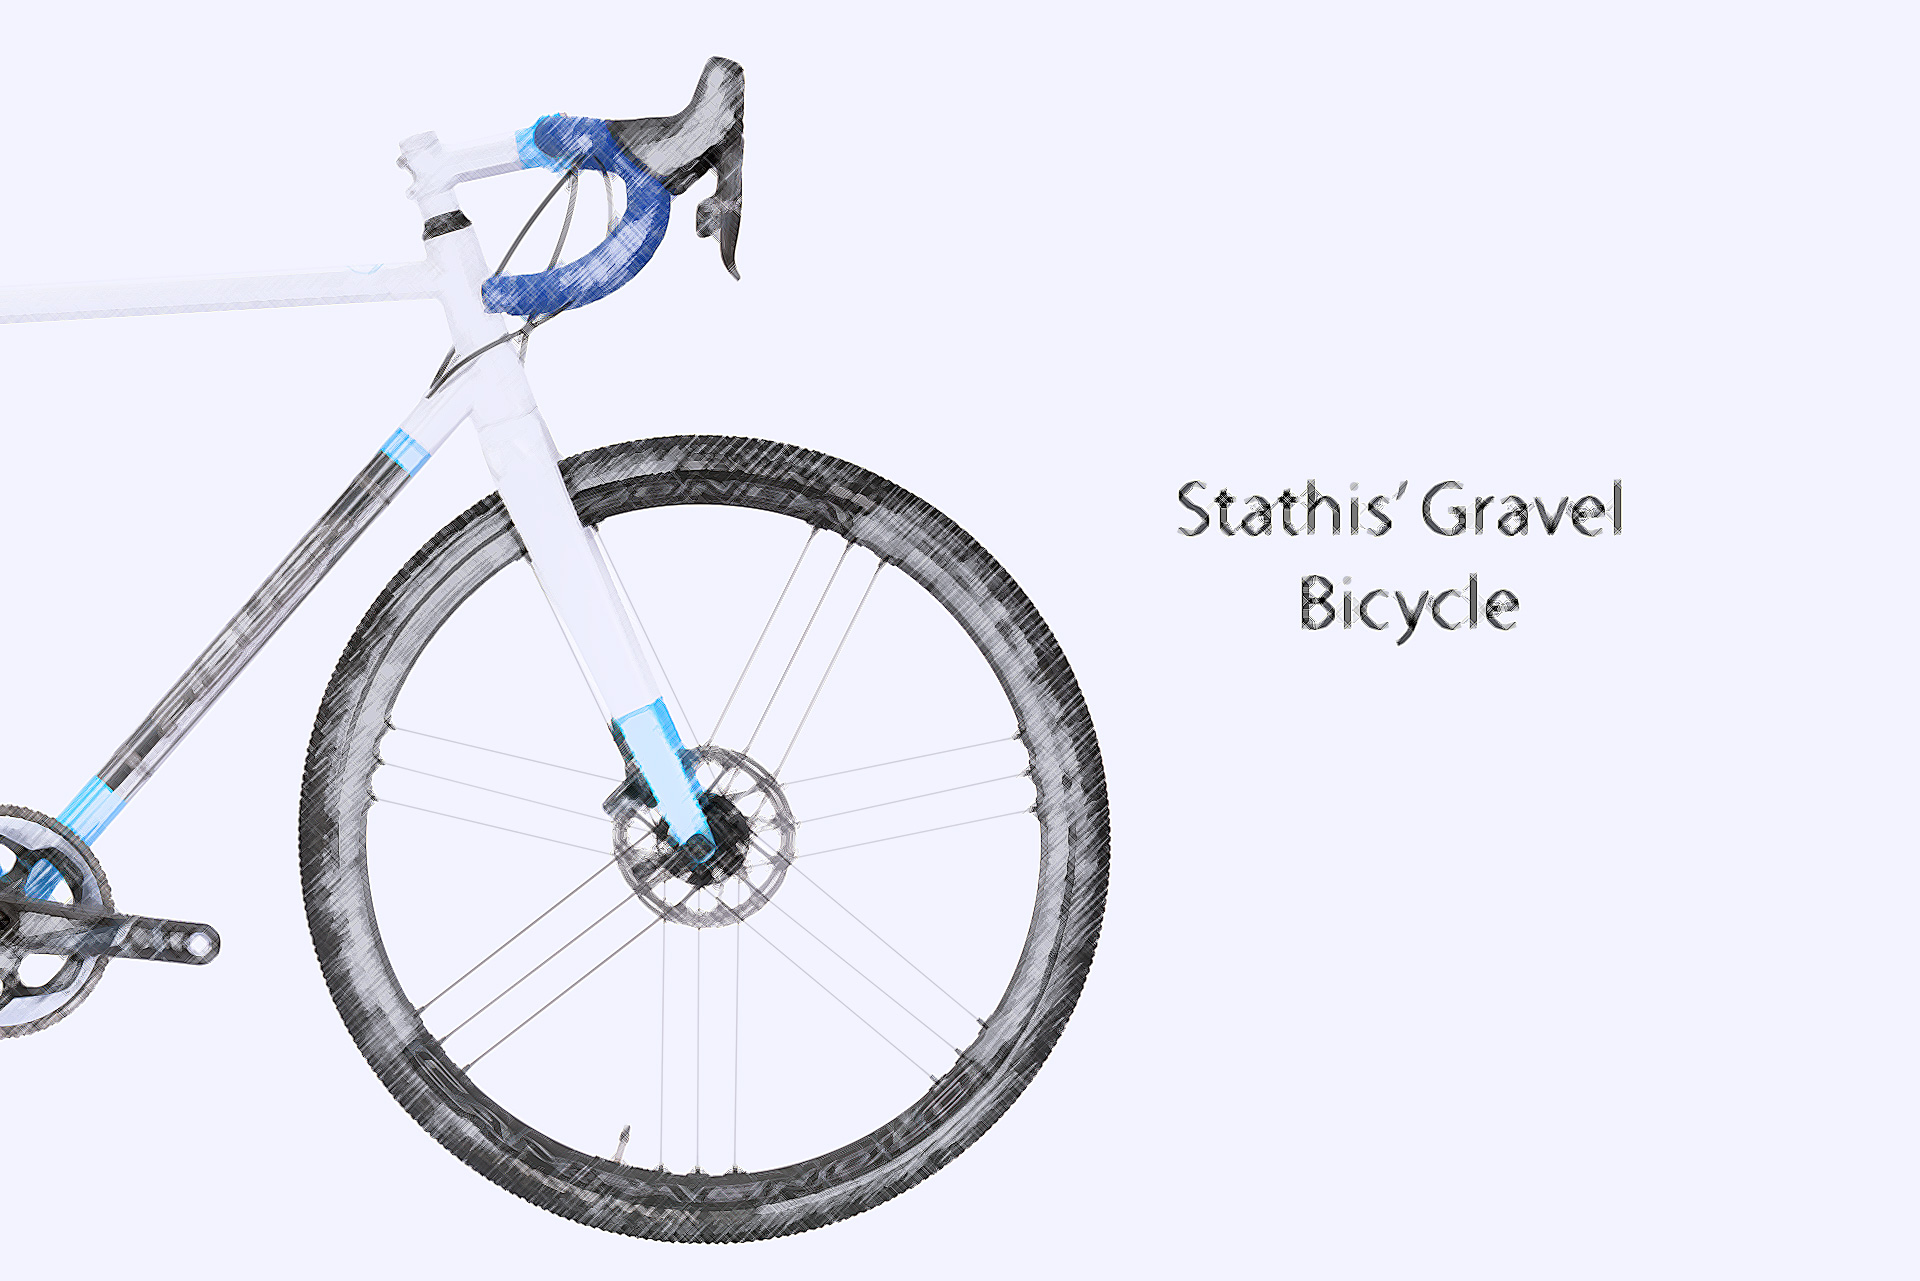 Gravel-Bicycle-Columbus-XCR-Eng Stathis' Gravel Bicycle